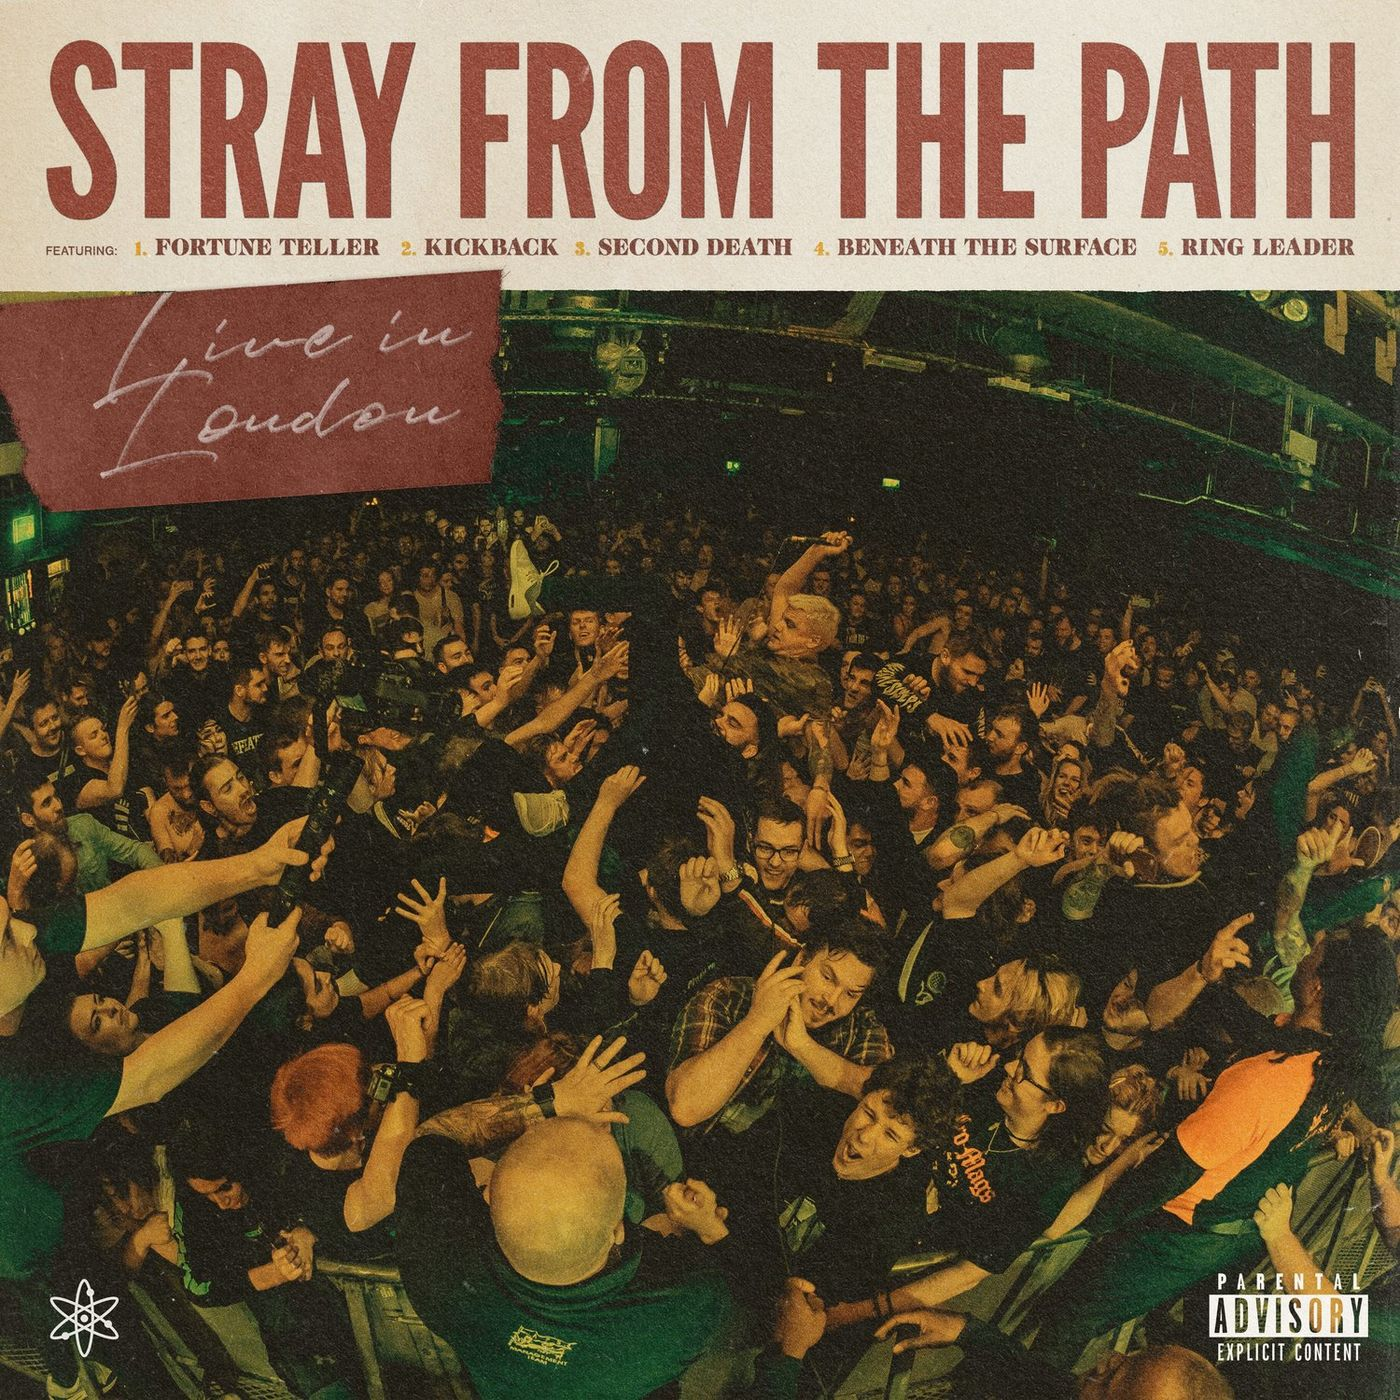 Stray From The Path - Internal Atomics: Live in London [EP] (2020)